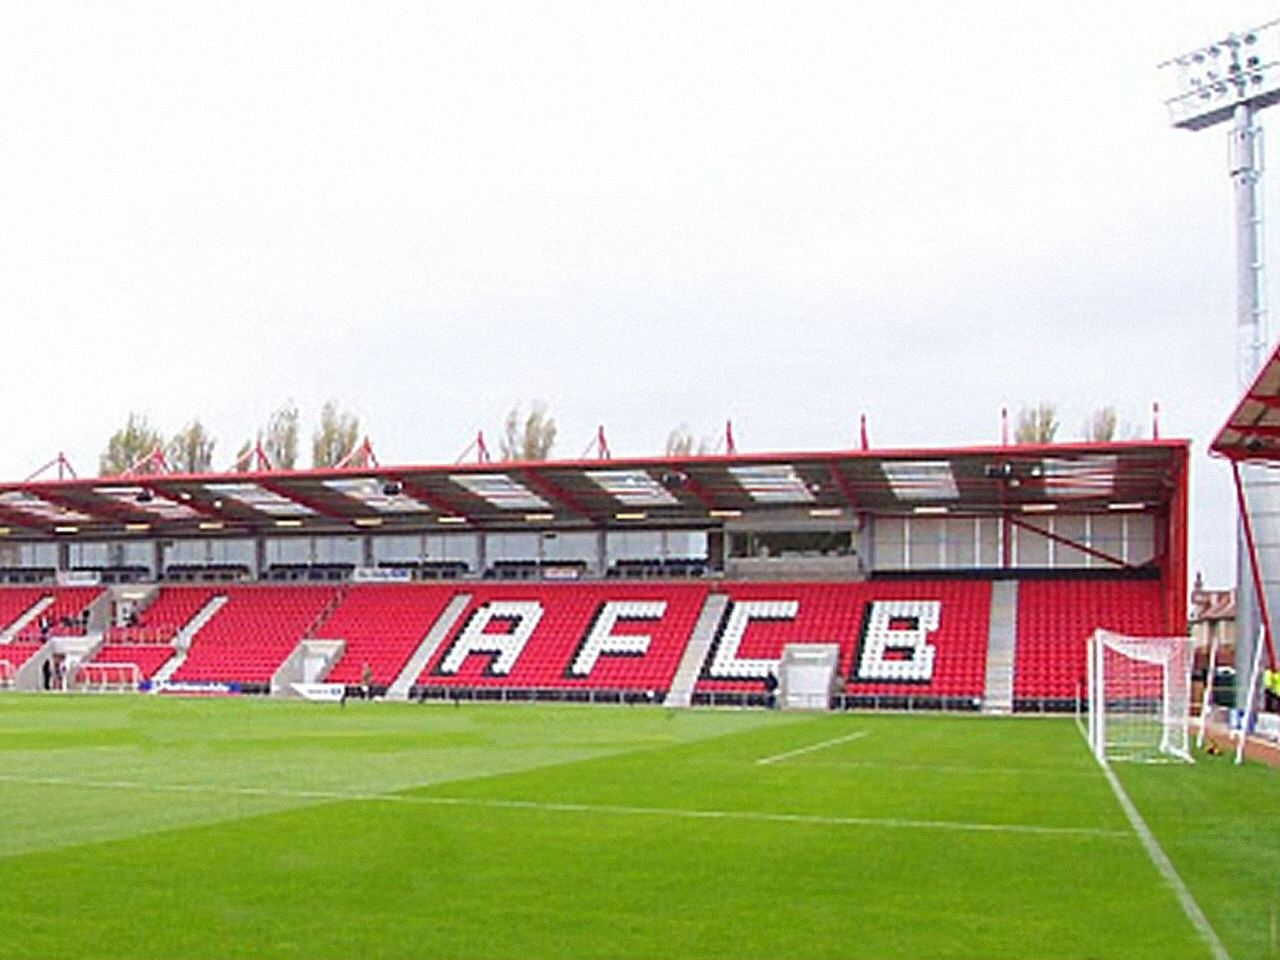 This match will take place at Bournemouth's Vitality Stadium